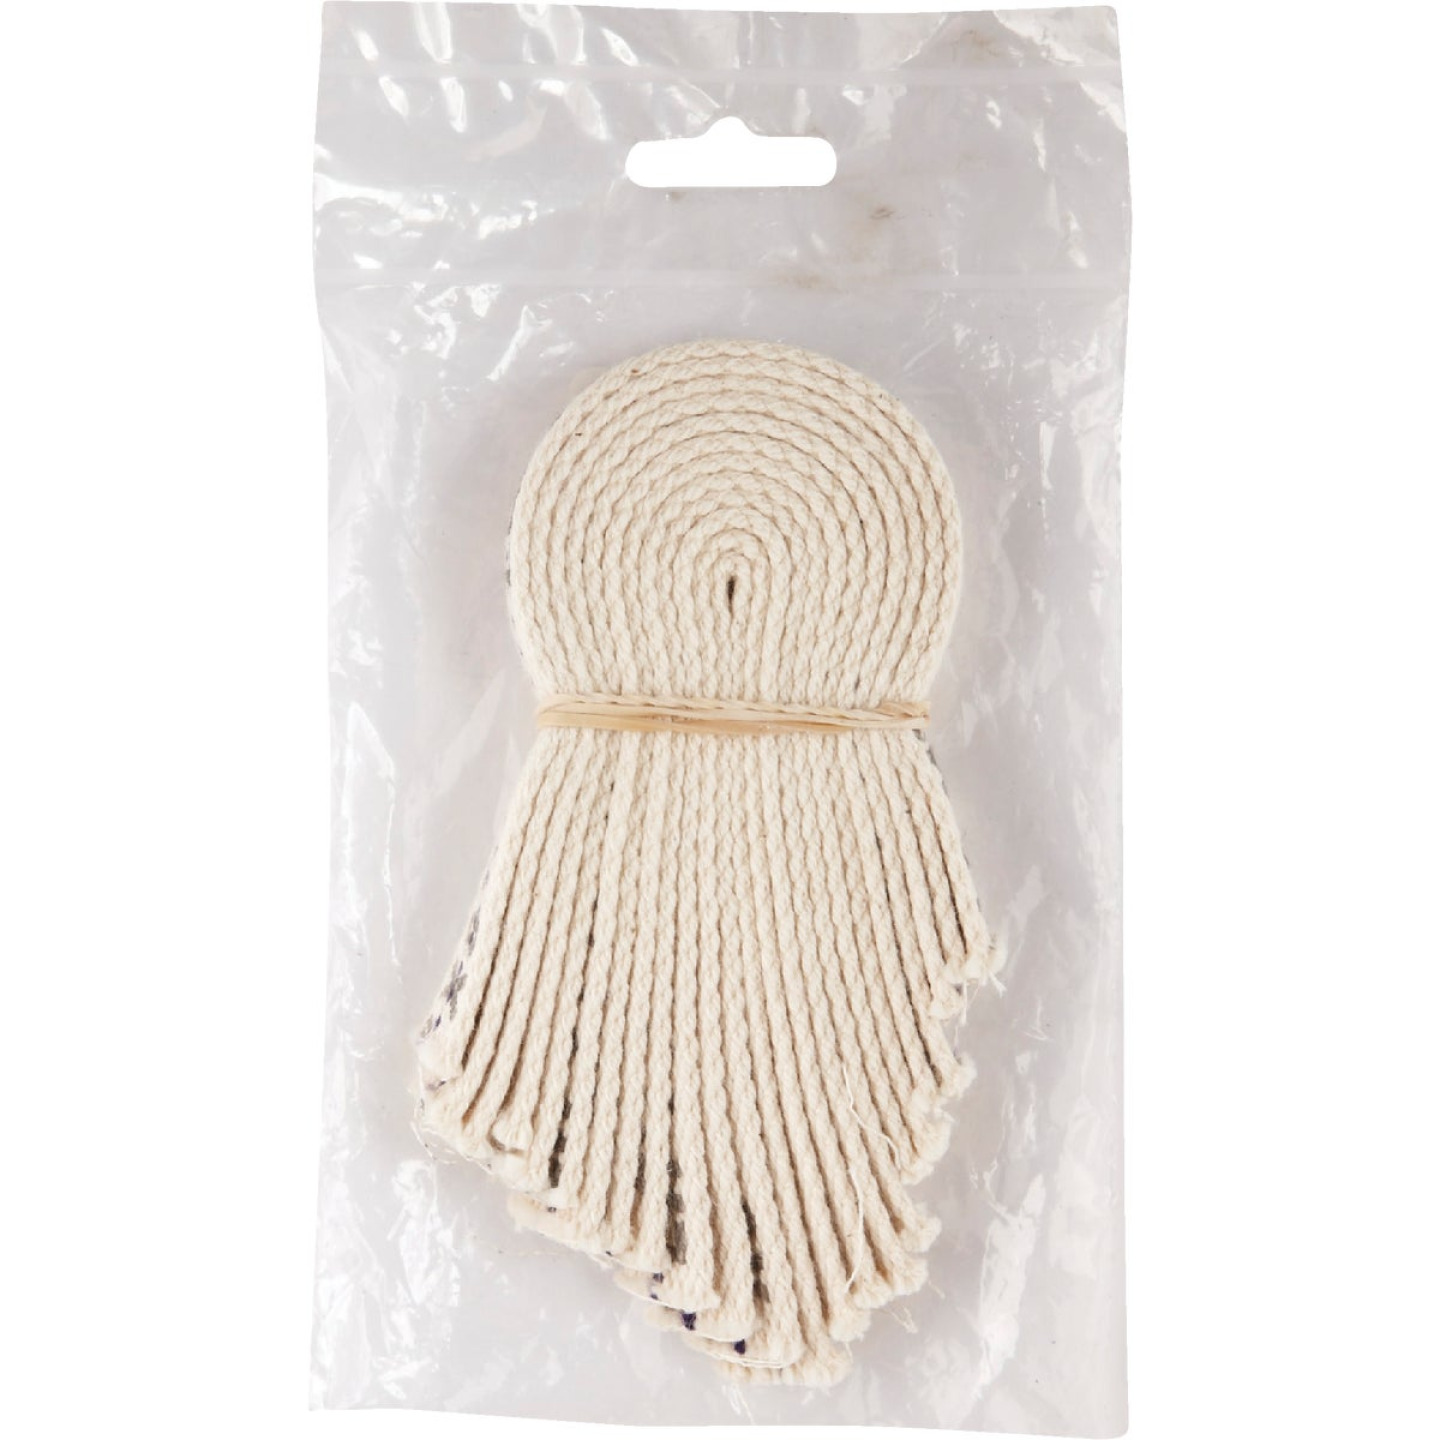 American Wick 3/8 In. x 8 In. Flat Lamp Wick (12 Count) Image 2